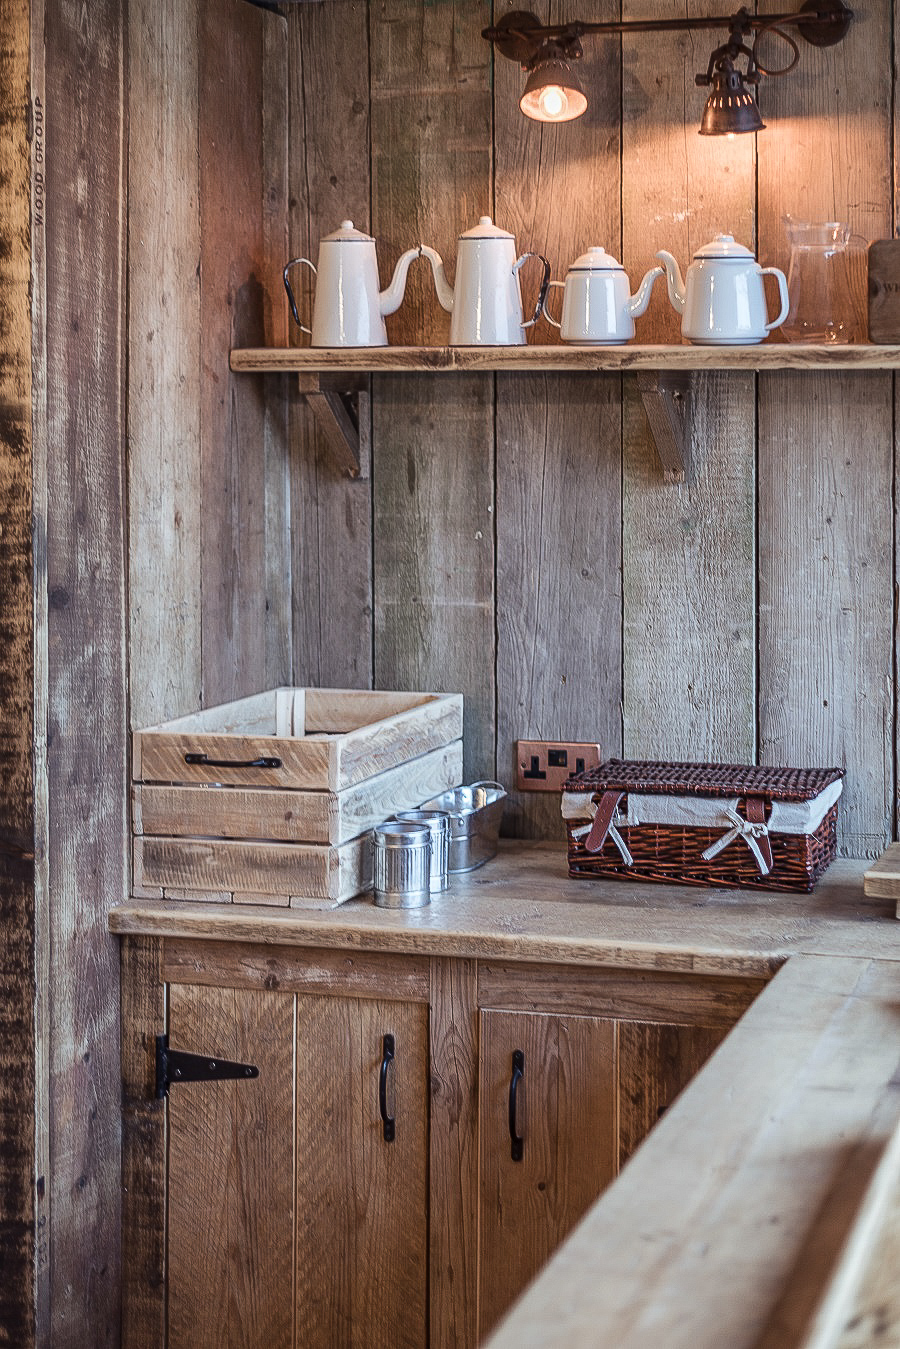 A Beautiful Rustic Kitchen Handmade in Devon